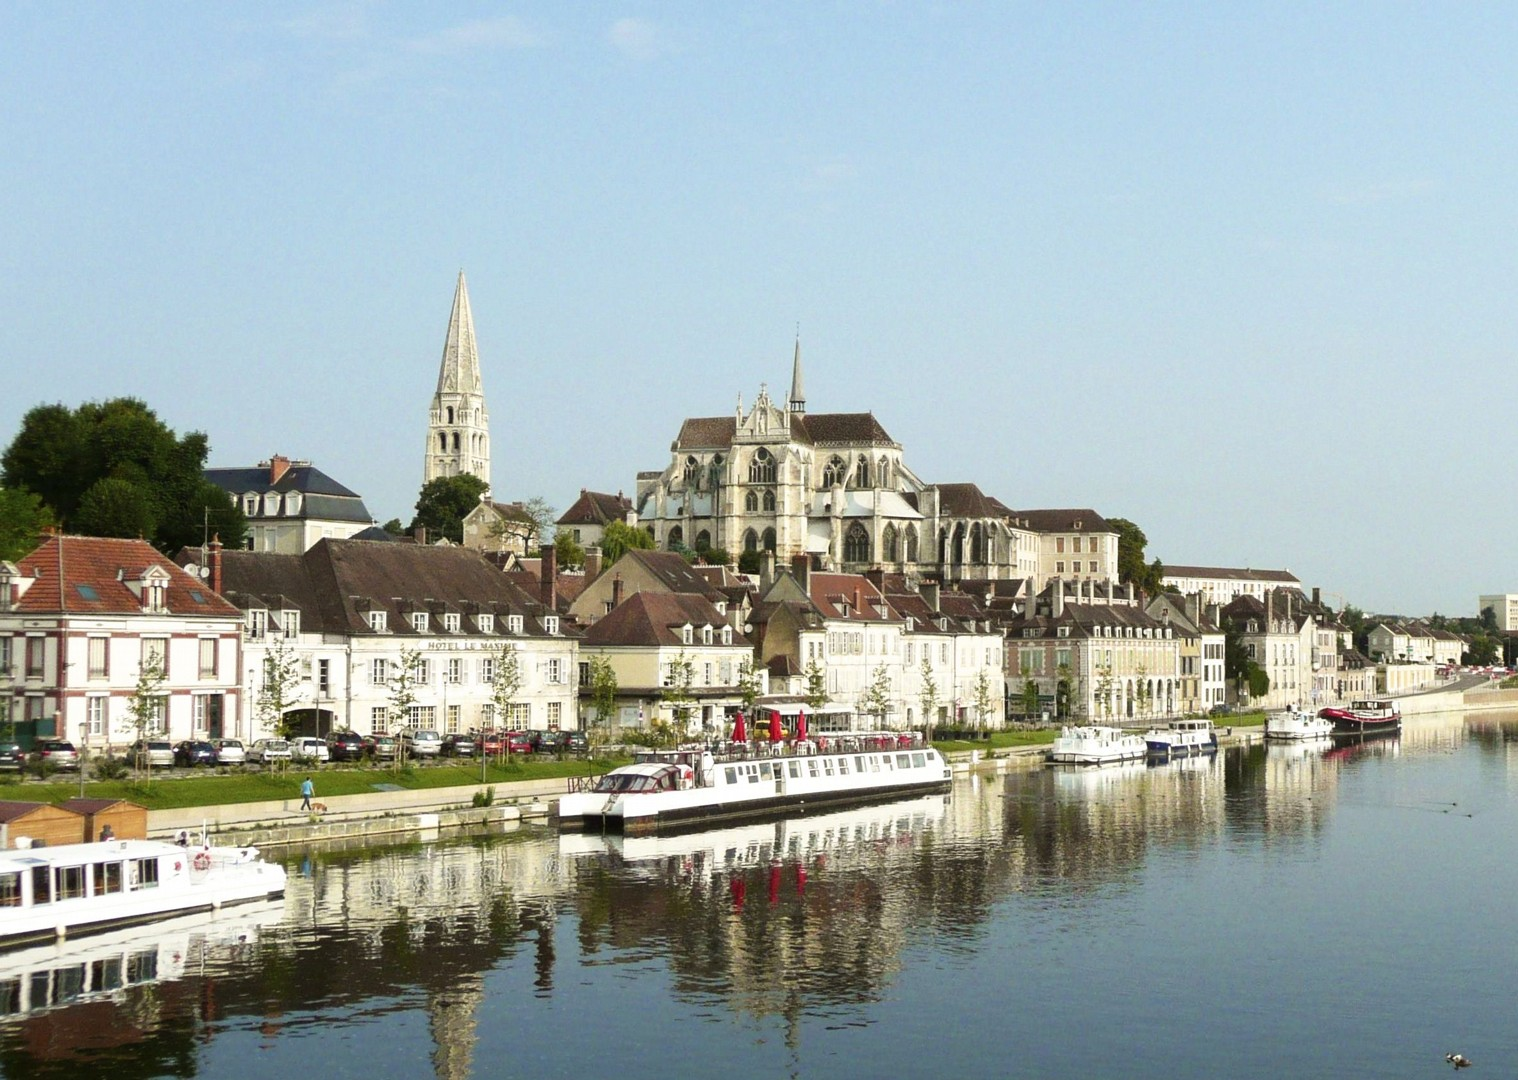 montbard-france-burgundy-caves-and-canals-self-guided-cycling-holiday.jpg - France - Burgundy - Caves and Canals - Self-Guided Leisure Cycling Holiday - Leisure Cycling